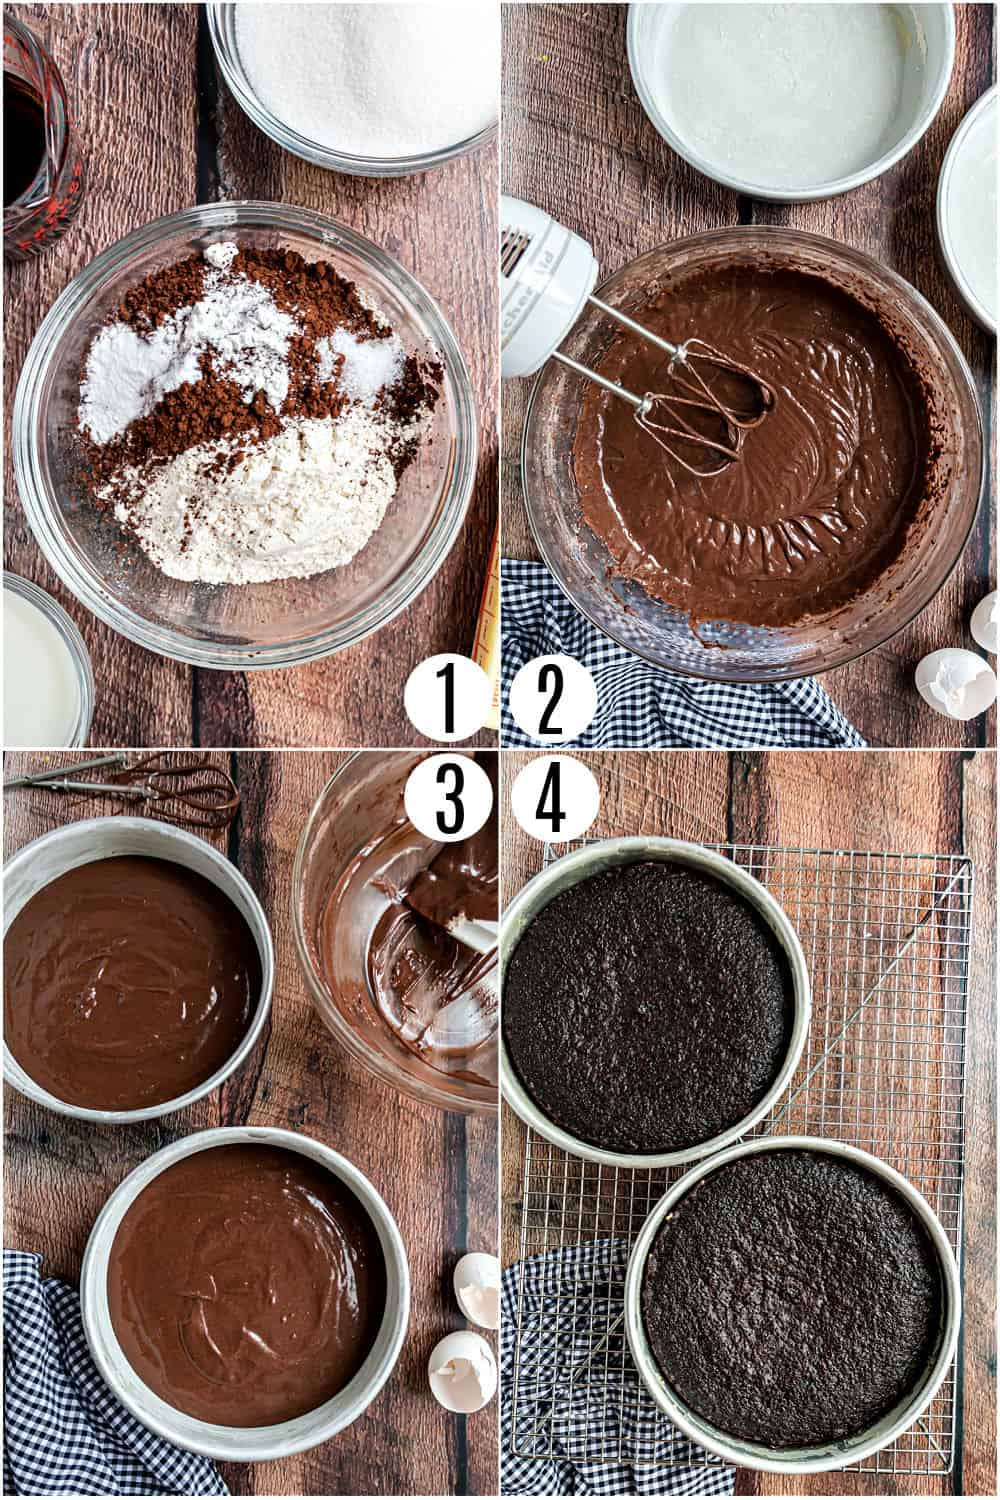 Step by step photos showing how to make chocolate cake from scratch.